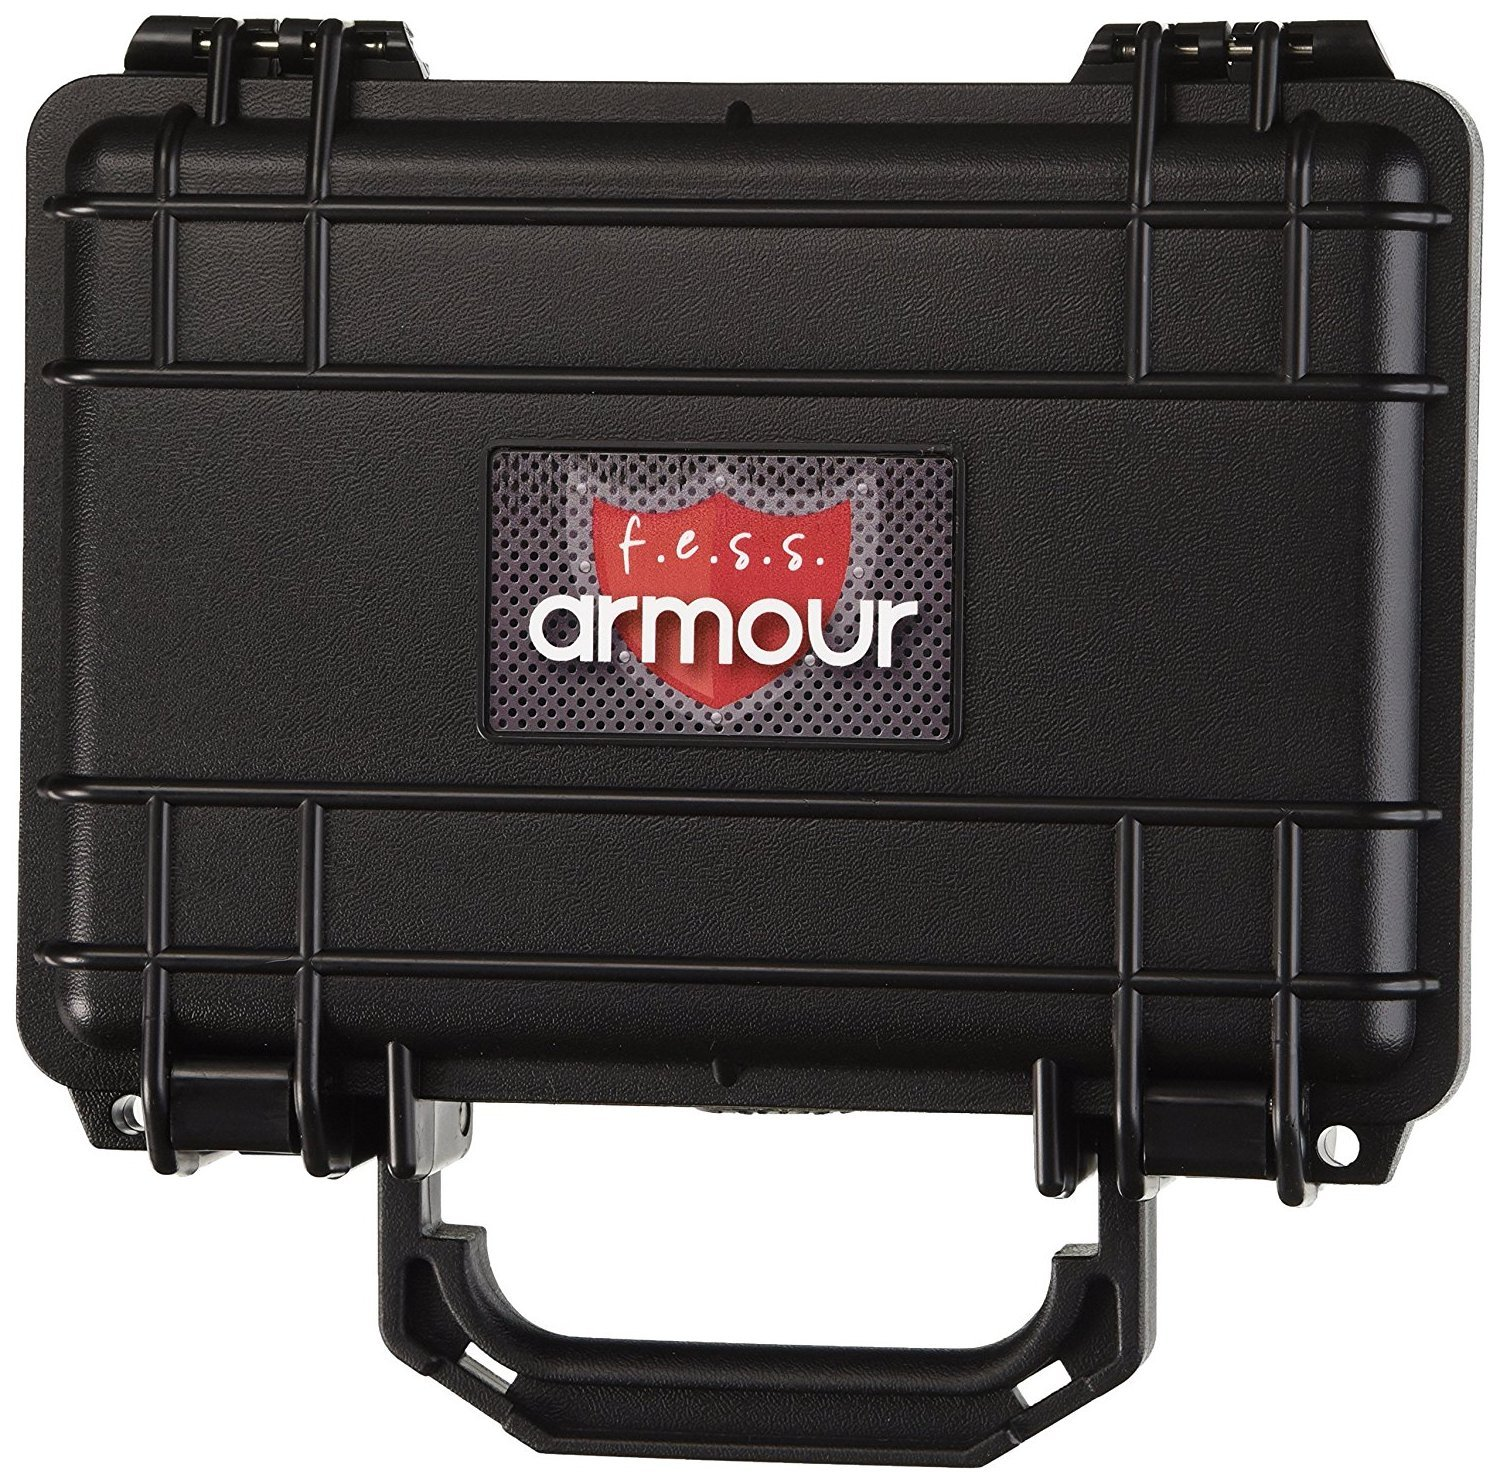 F.e.s.s. Fess Armour Waterproof Crushproof Air tight Floats On Water Solid Black Travel Cigar Humidor Capacity 10-15 Cigars